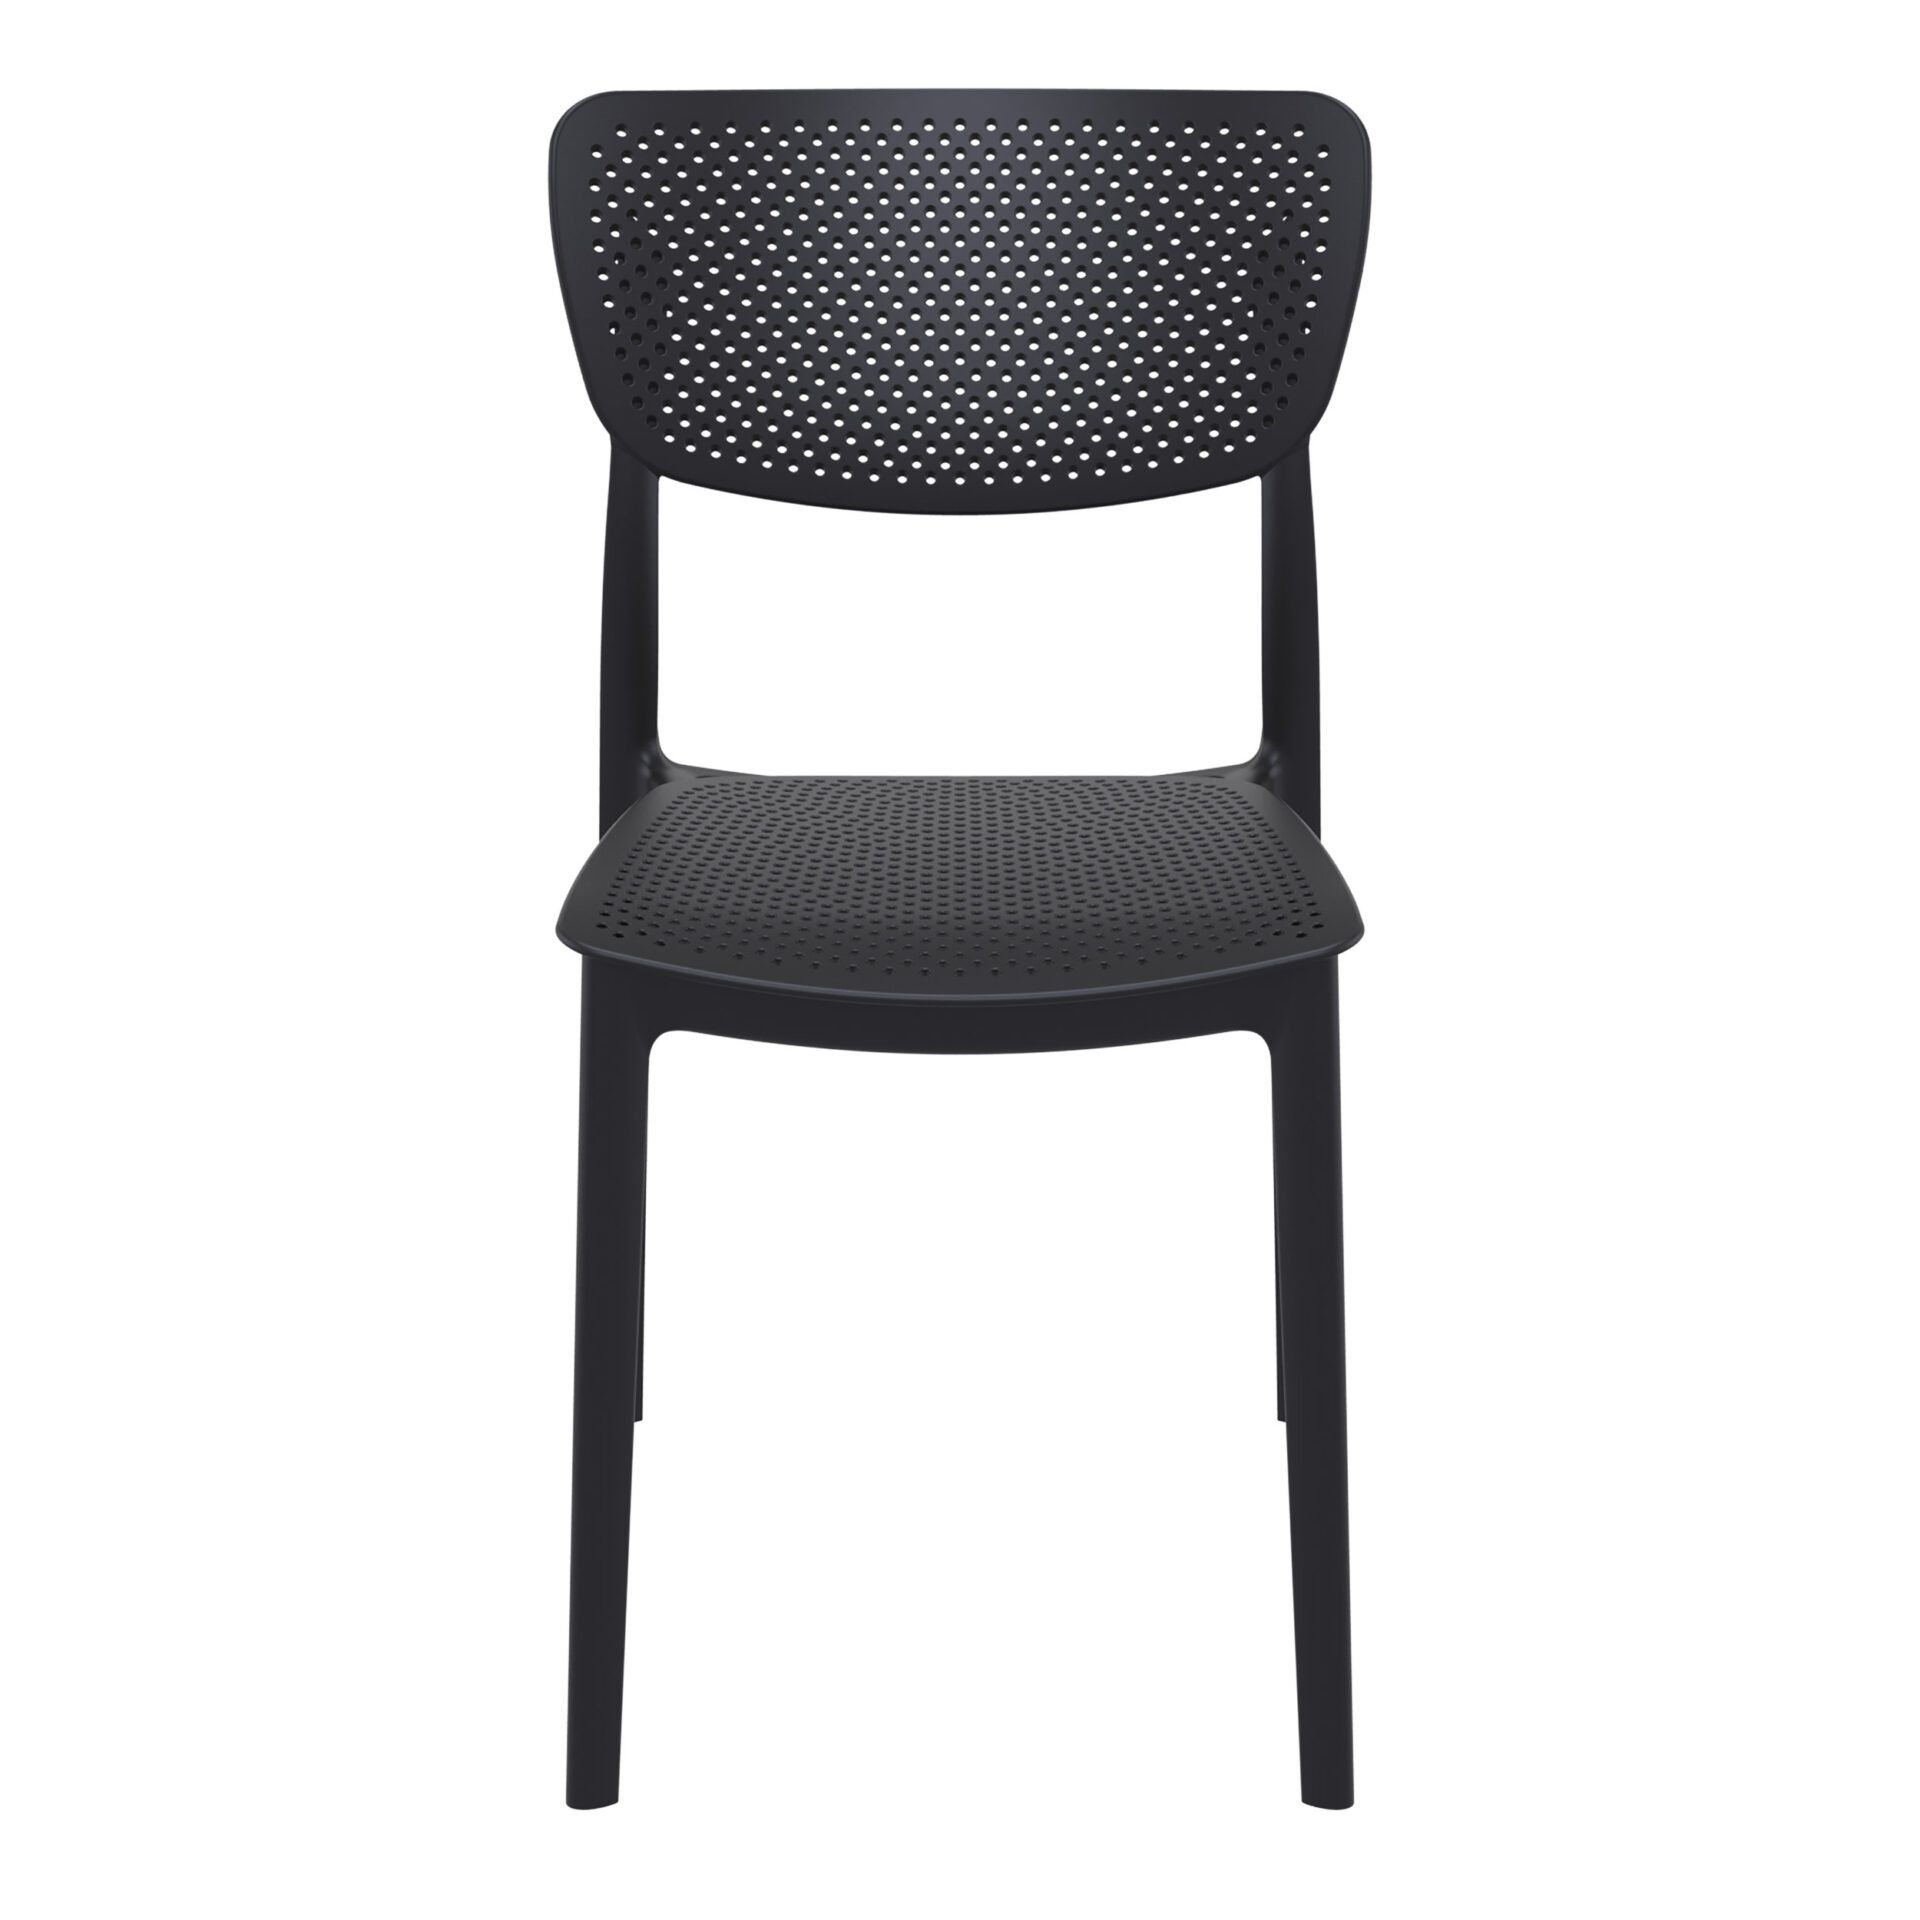 polypropylene hospitality seating lucy chair black front